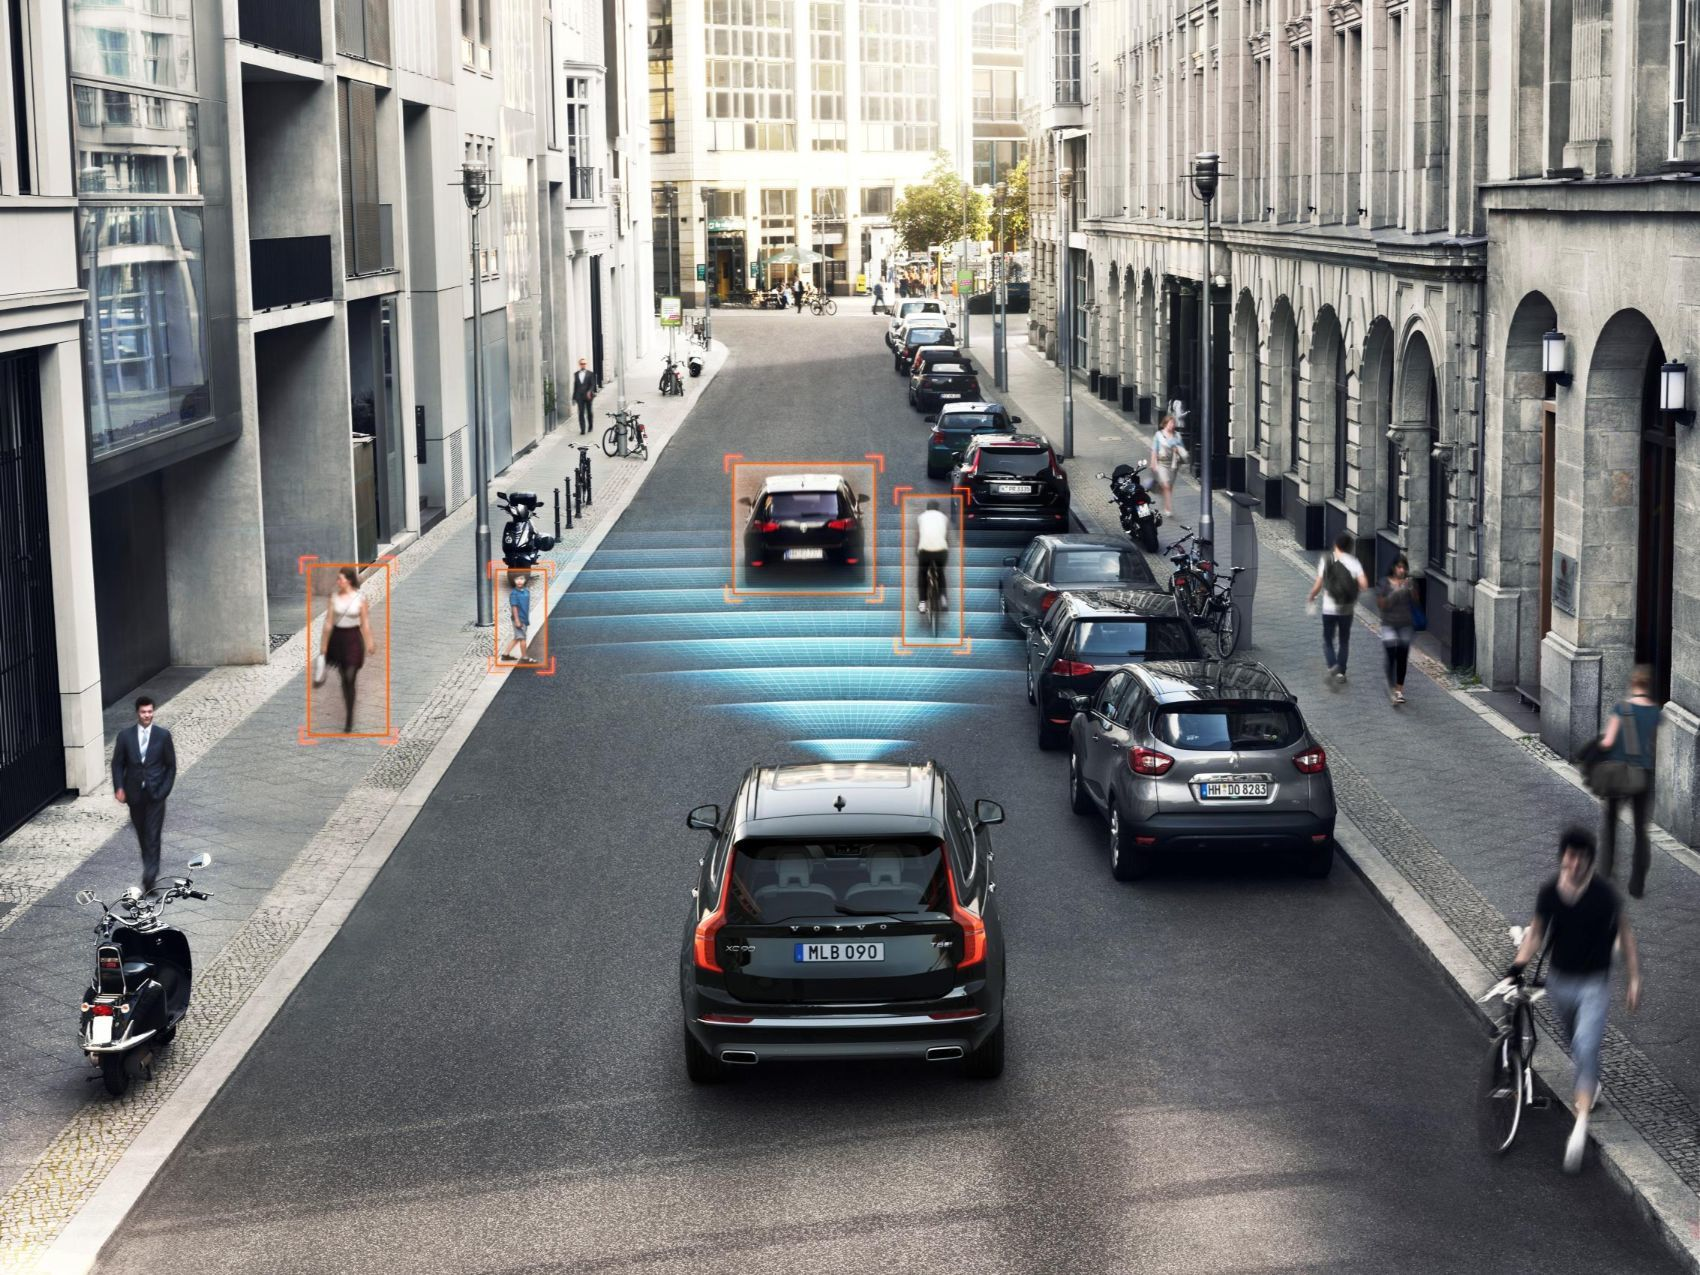 volvo leads new research to improve road safety for cyclists